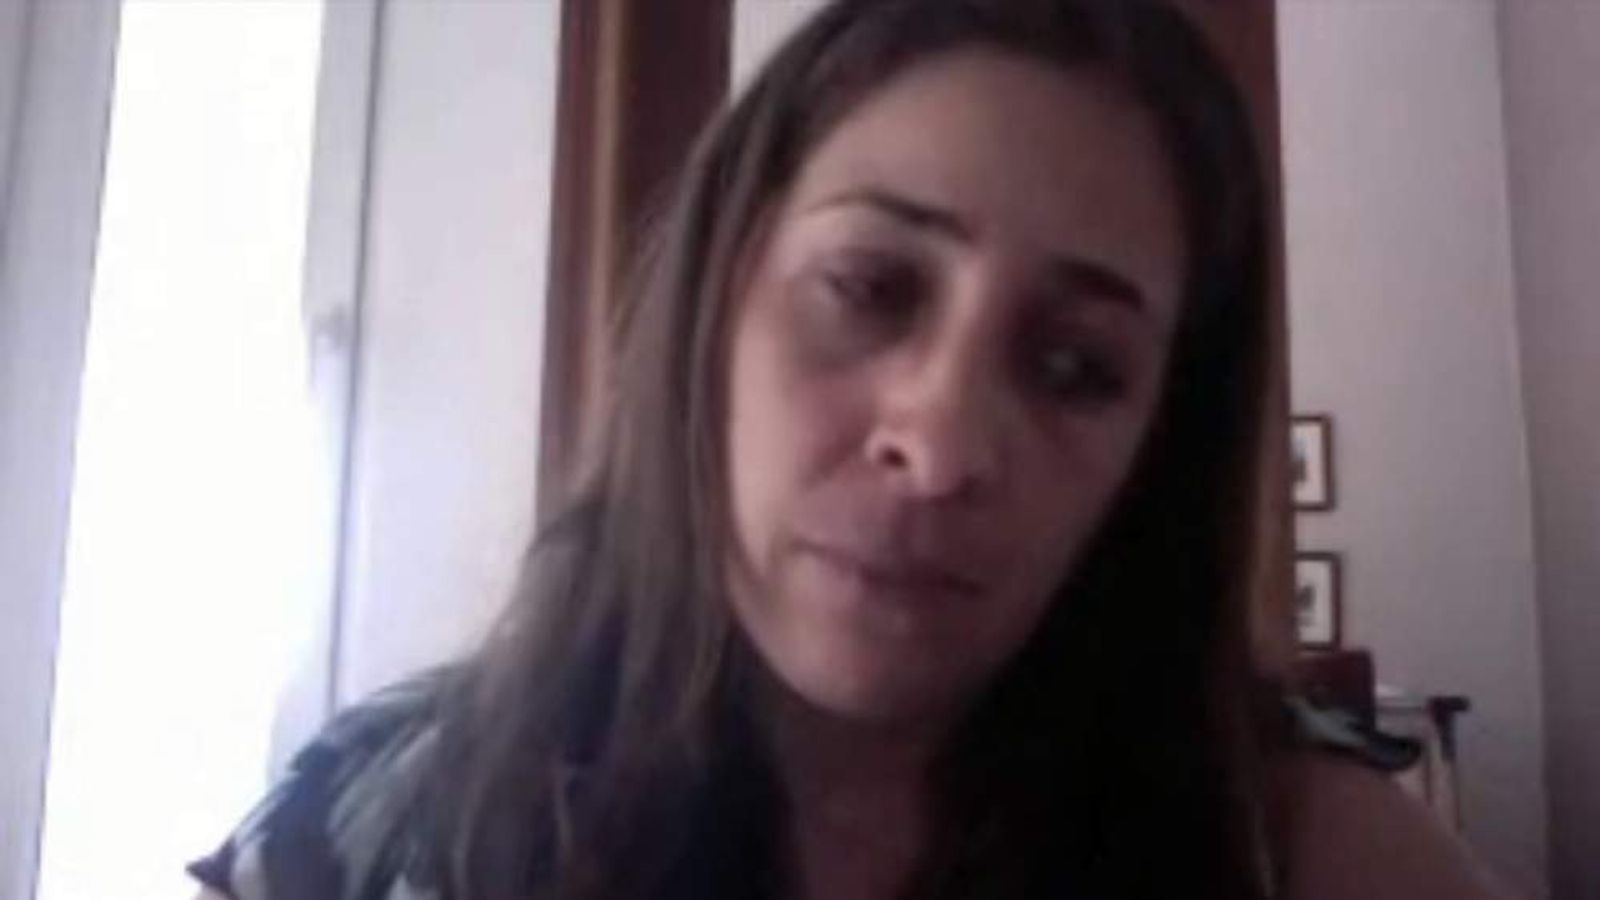 Mother in Nicaragua speaks of her pain after finding out about abuse